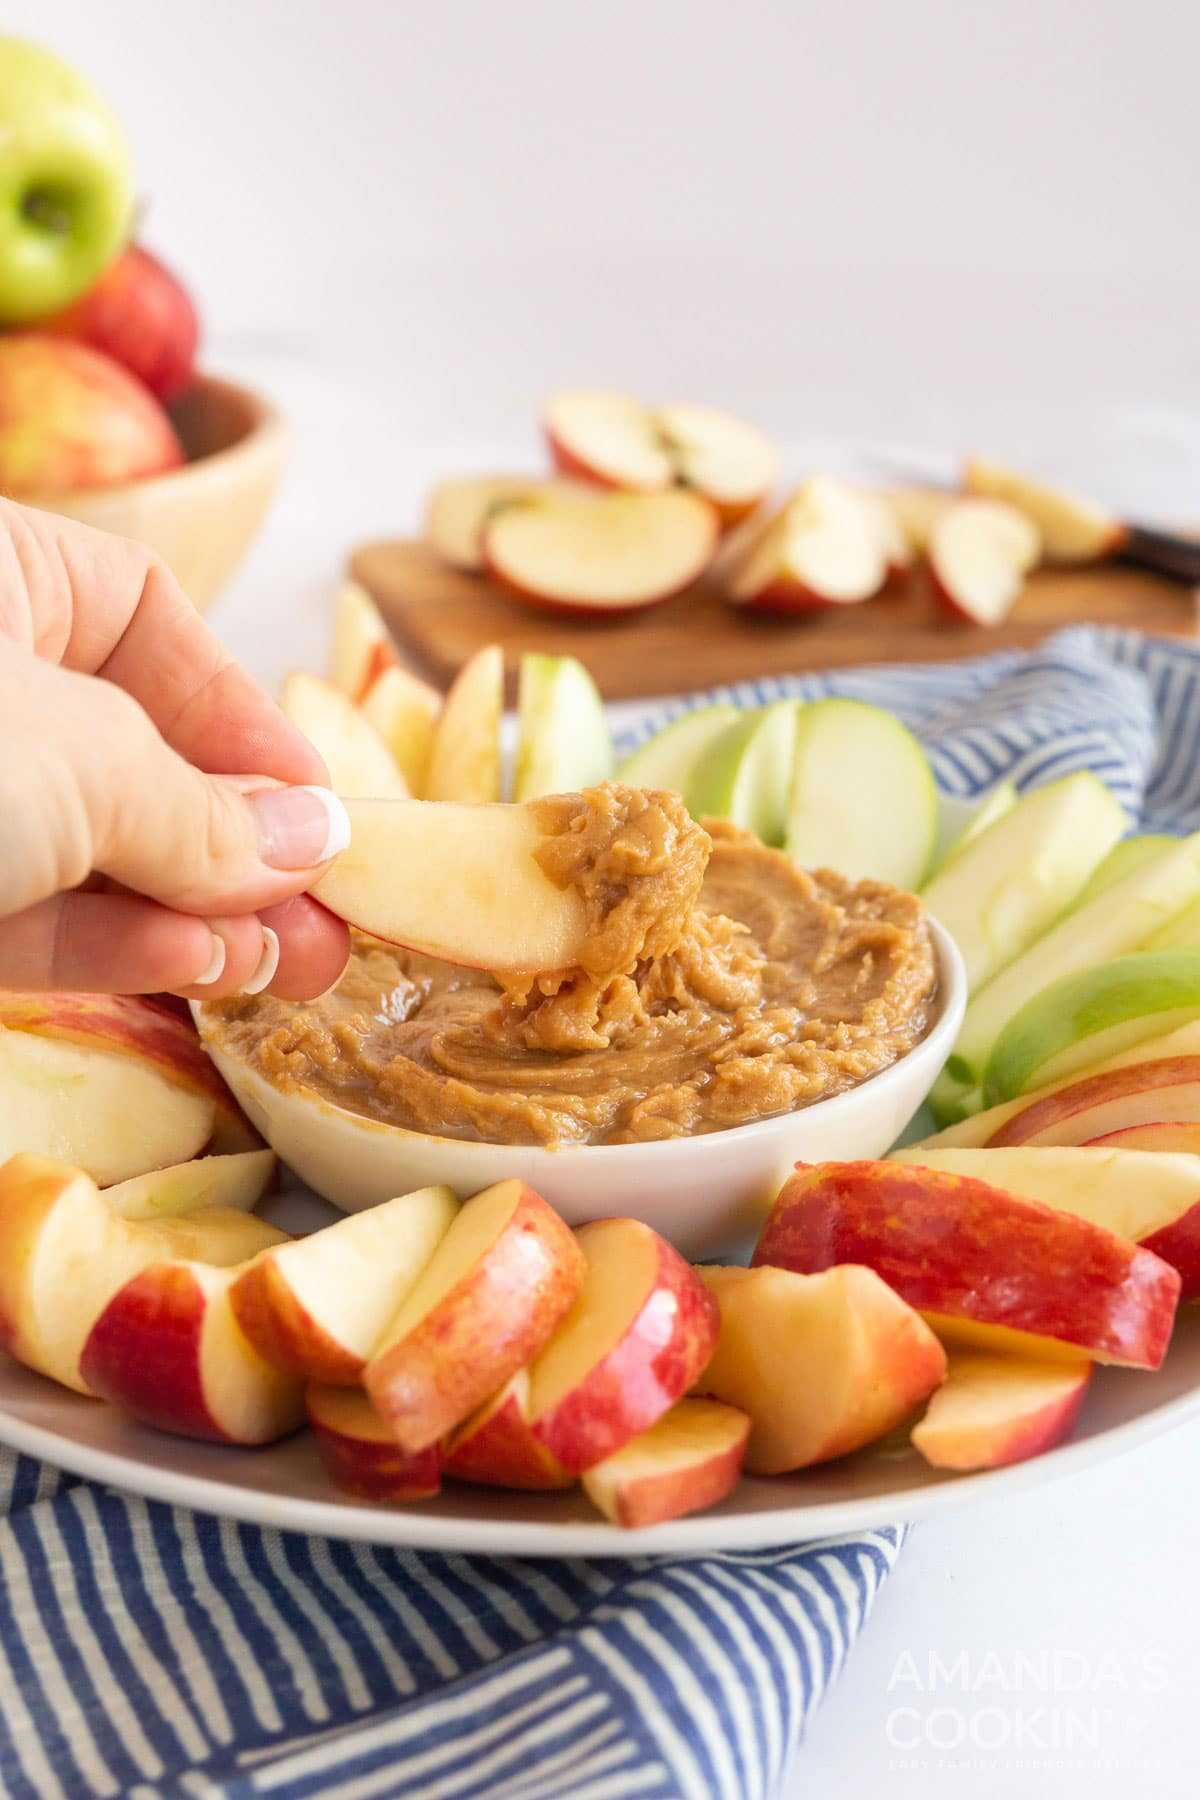 person dipping apple slice in peanut butter apple dip